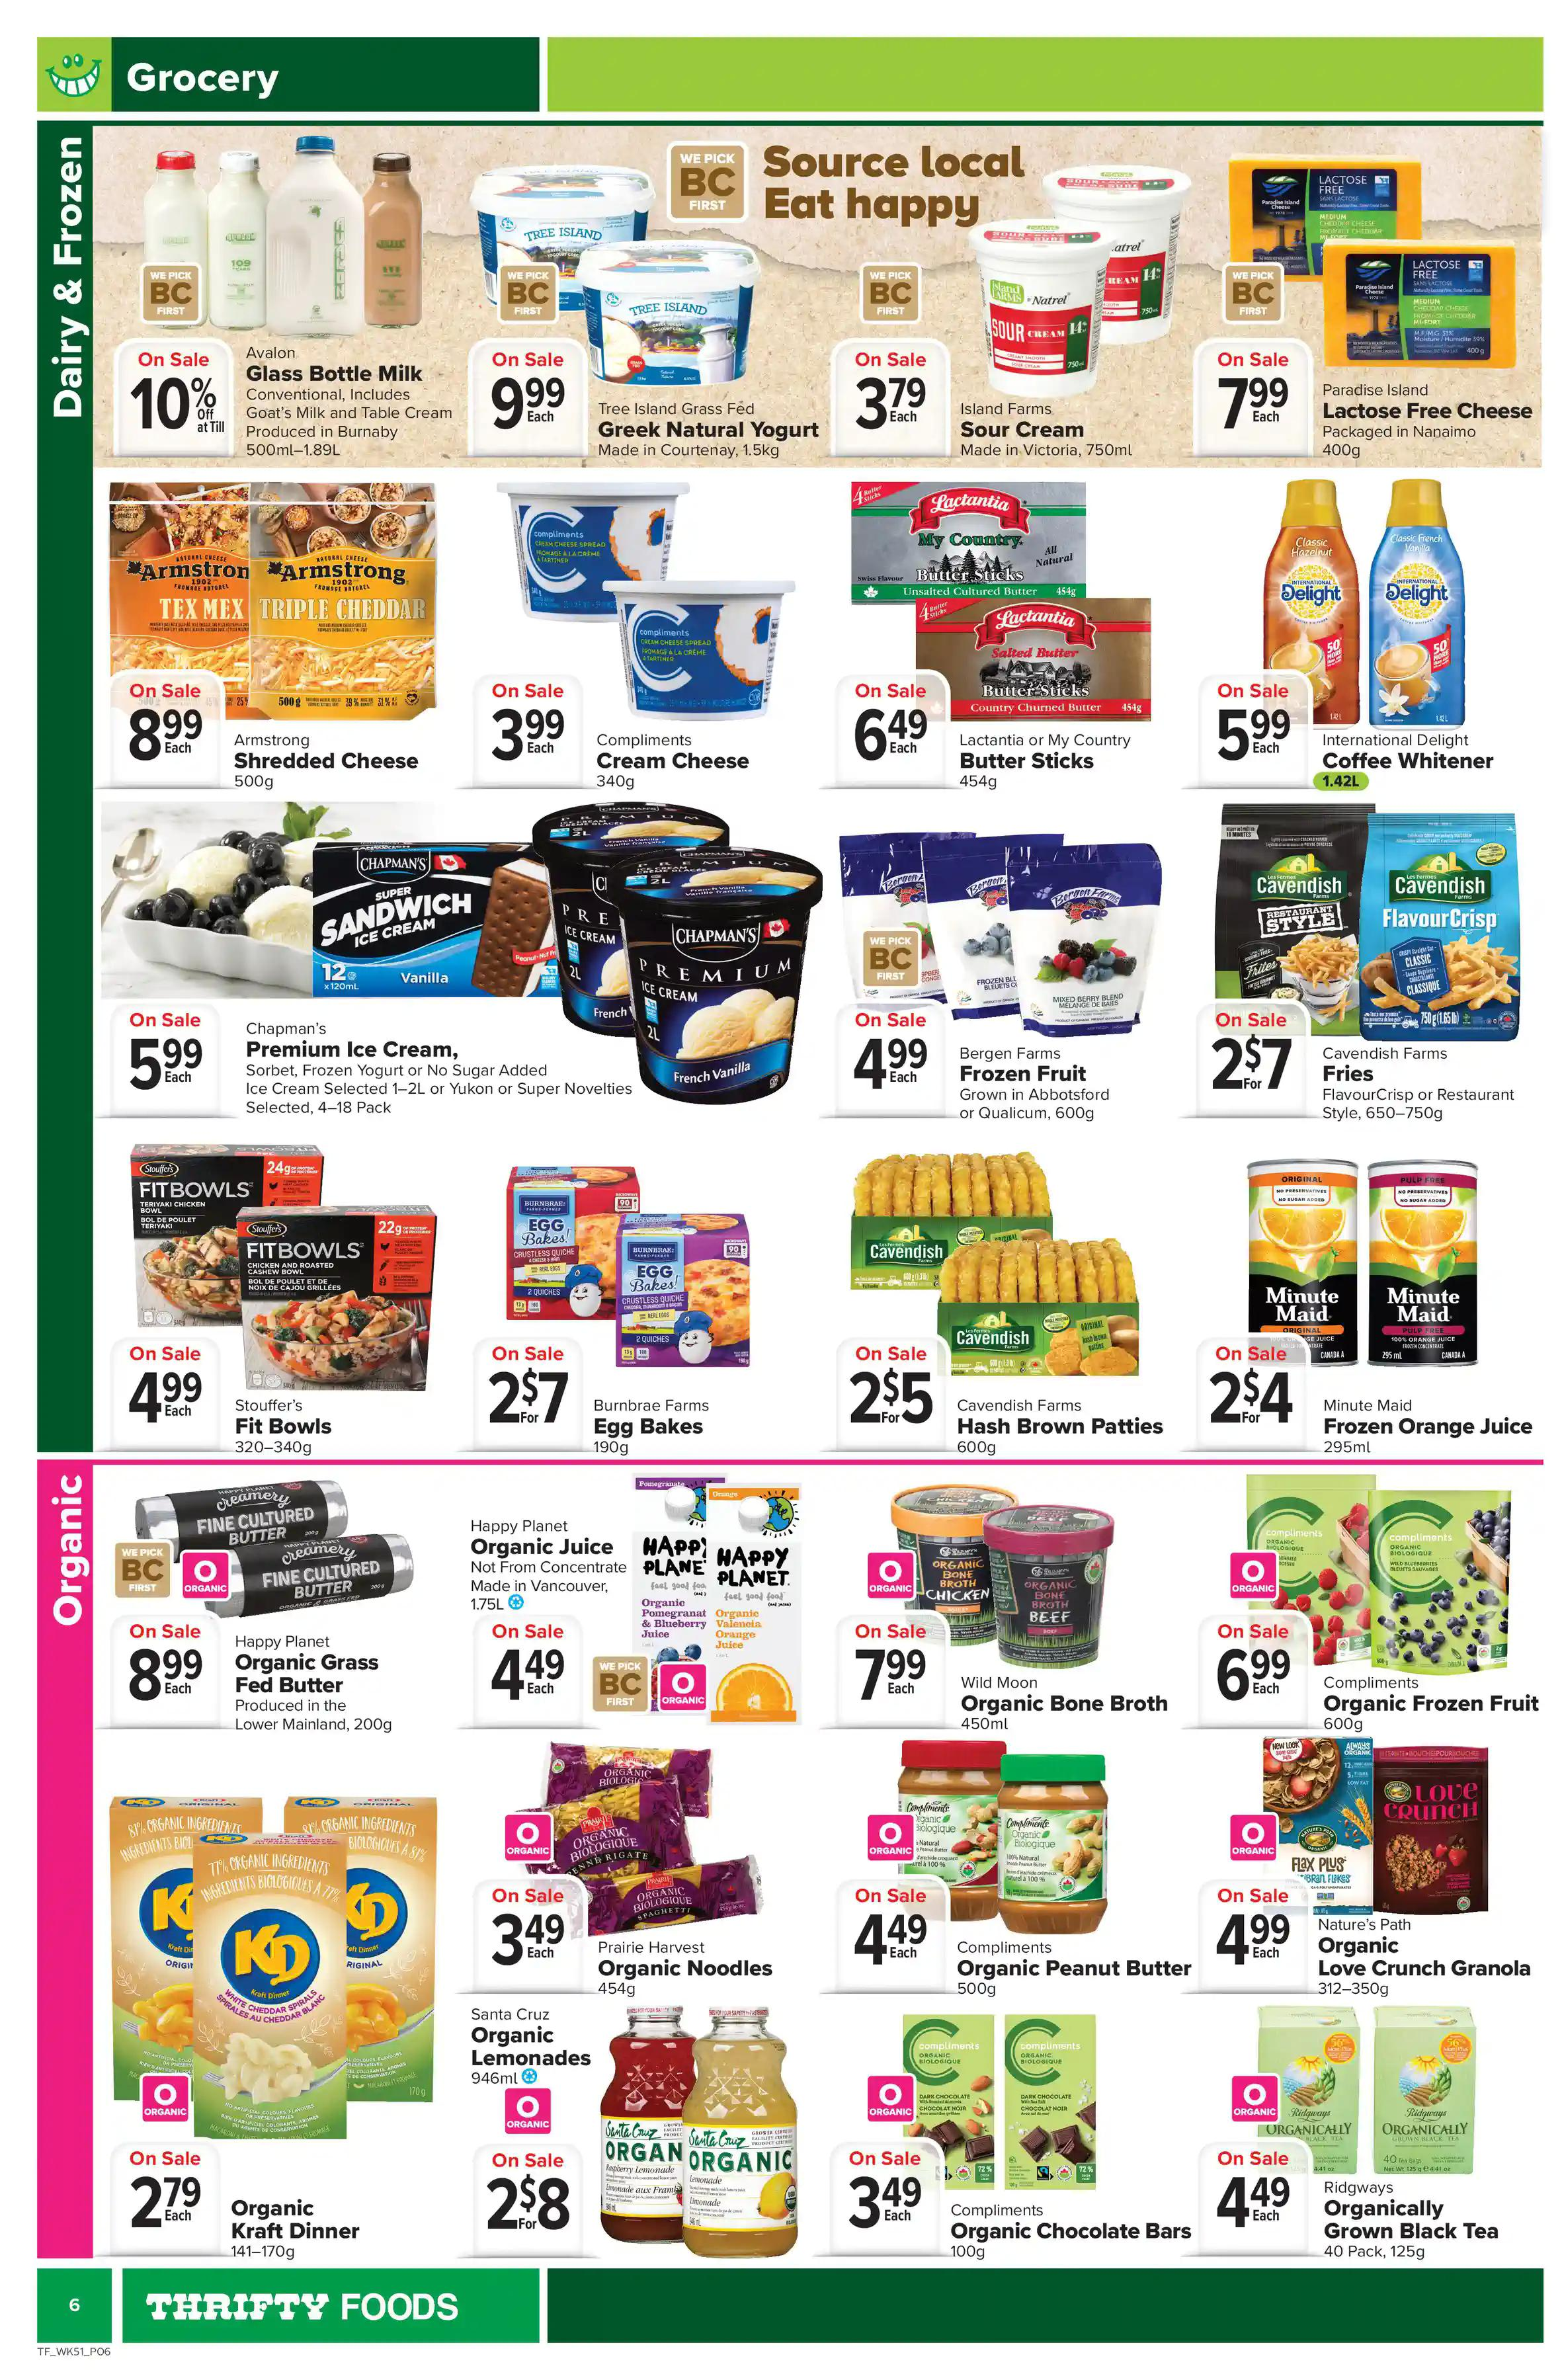 Thrifty Foods - Weekly Flyer Specials - Page 6